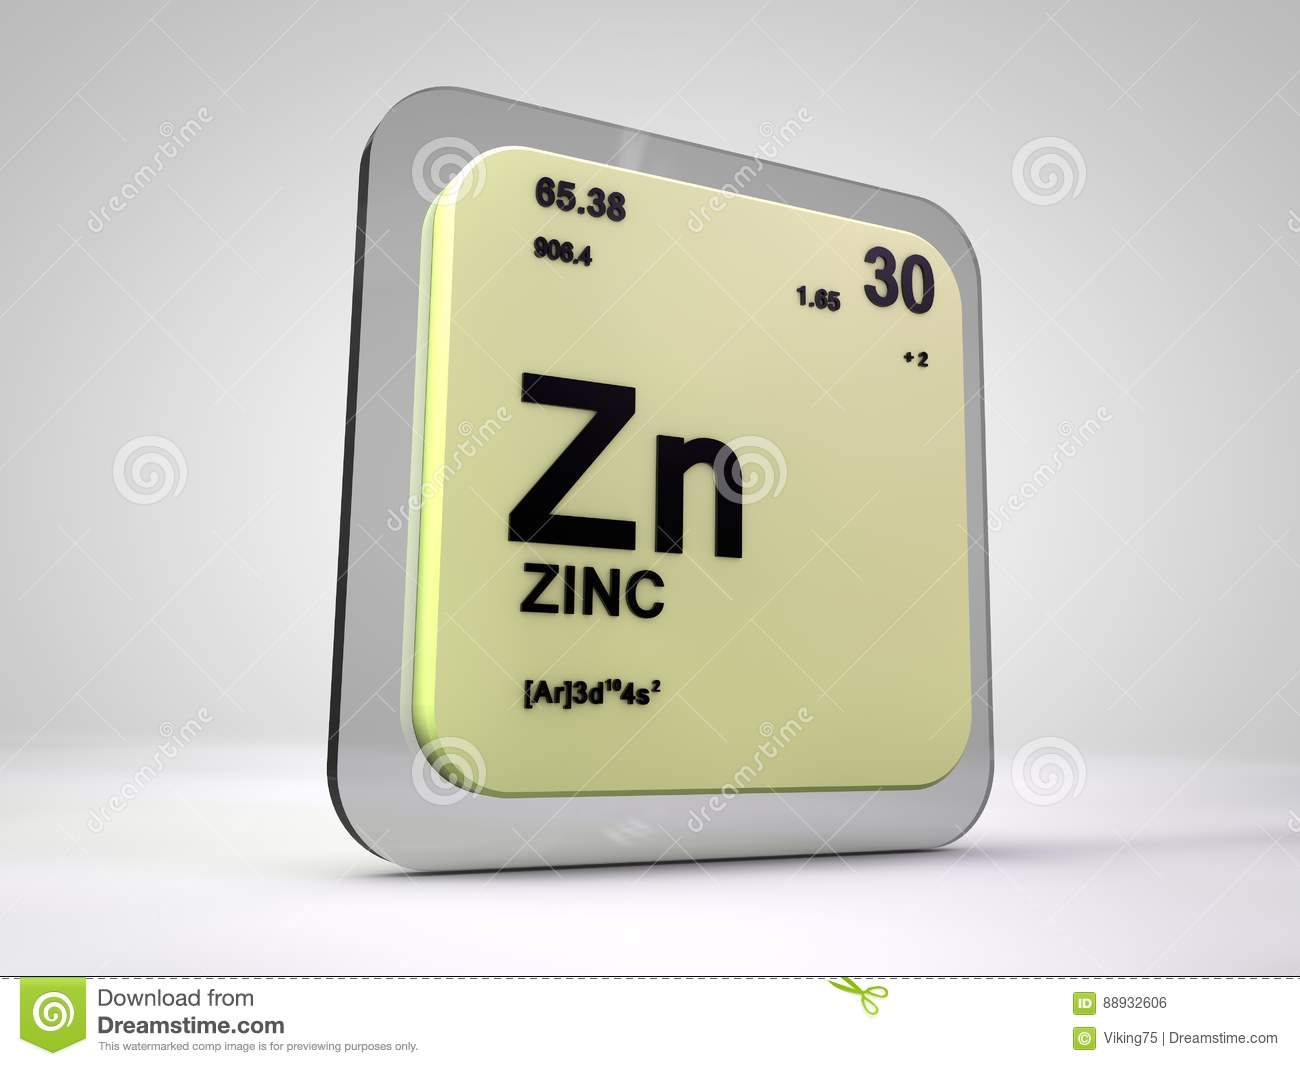 Zinc Zn Chemical Element Periodic Table Stock Illustration